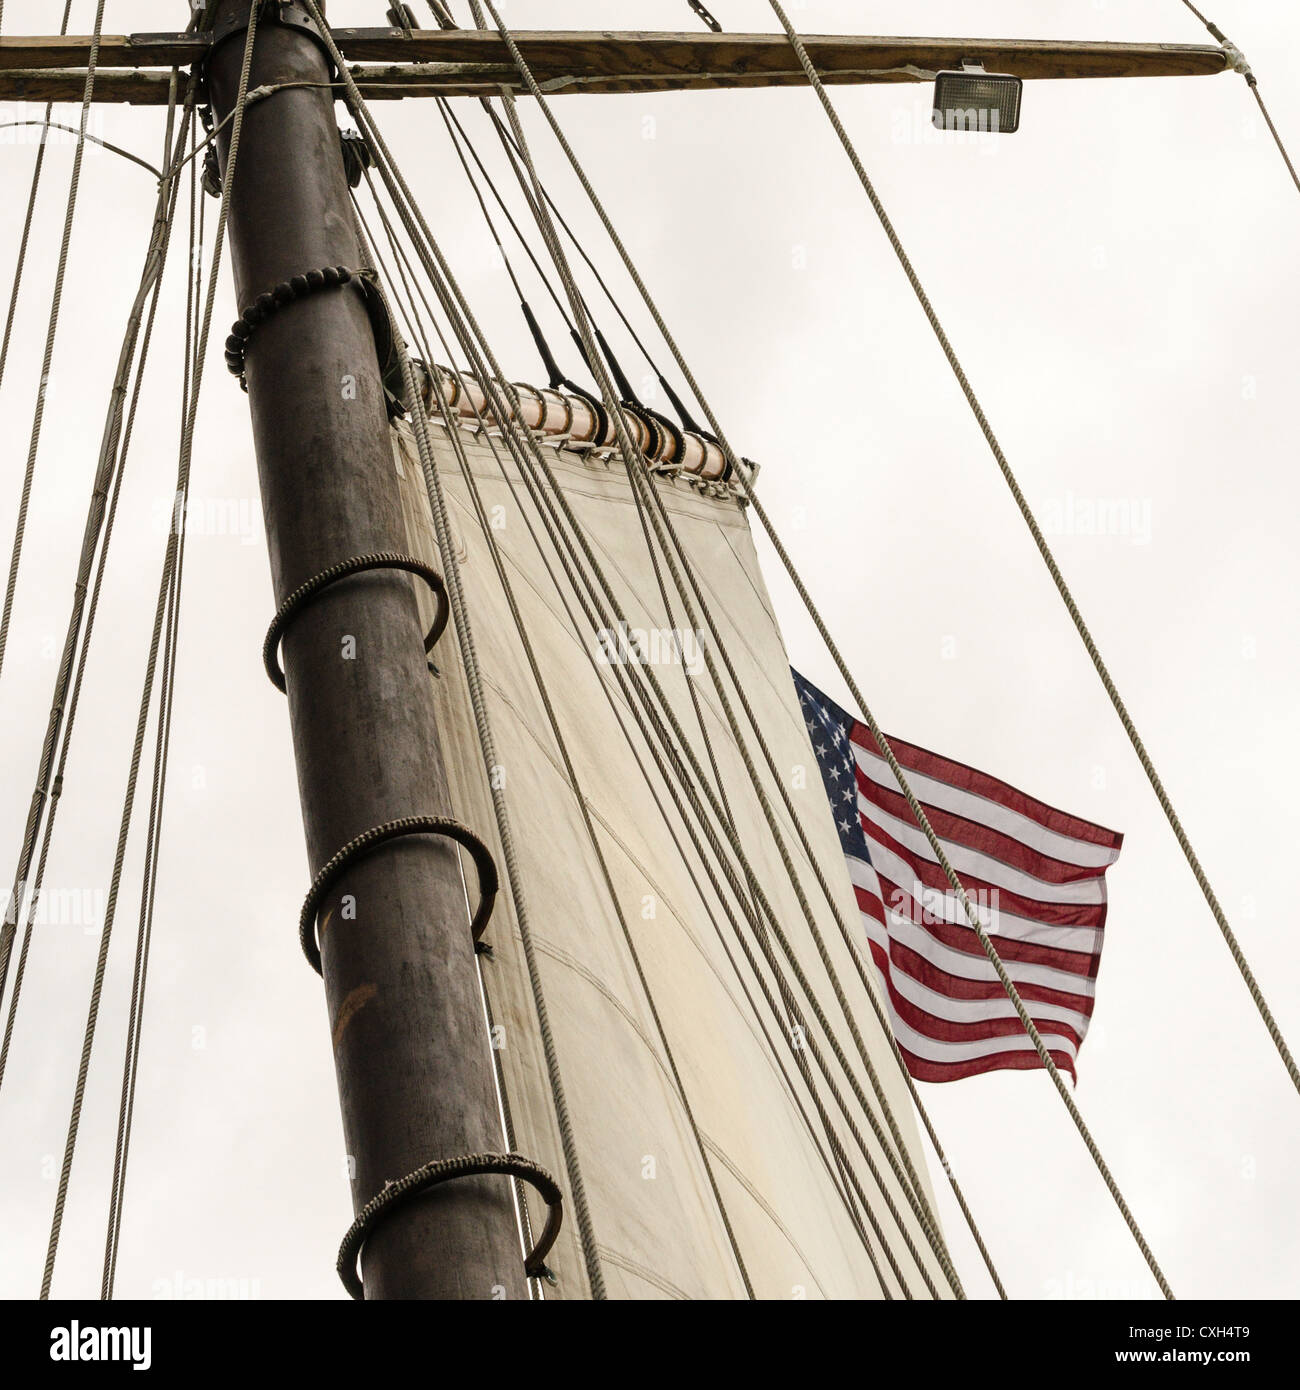 An American flag flies from the mast of the tall ship schooner Tyrone from Cape Cod at the start of OpSail Connecticut - Stock Image